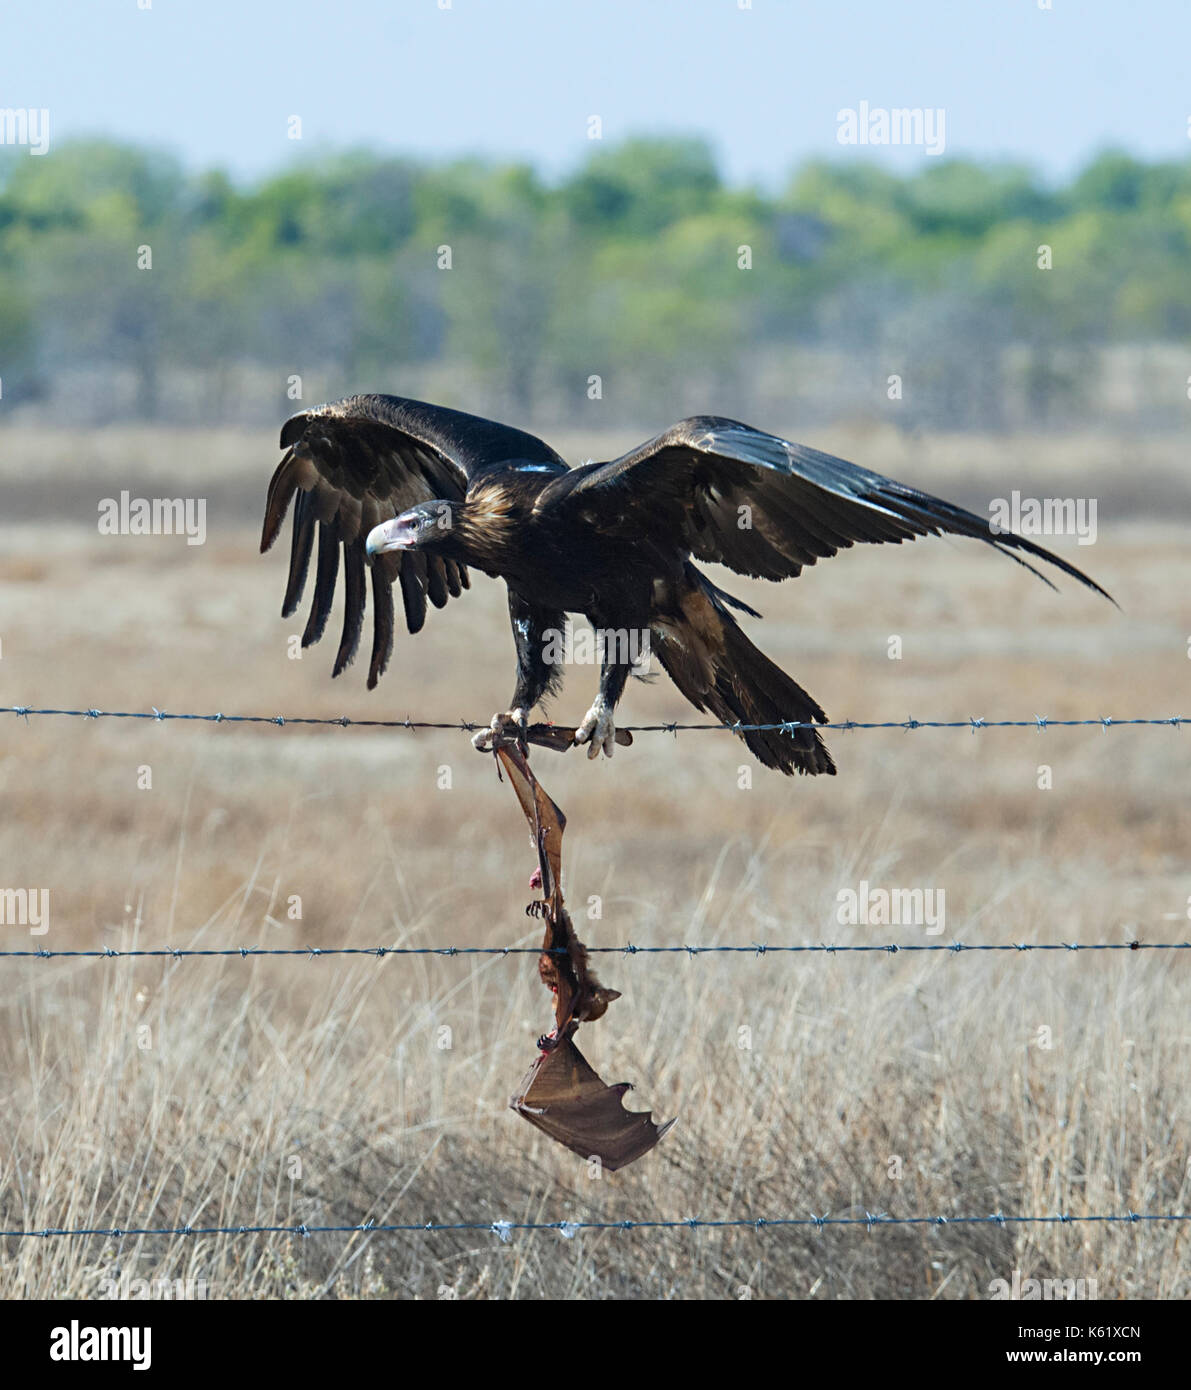 Wedge-tailed Eagle (Aquila audax) with a dead bat entangled in barbed wire, Queensland, QLD, Australia - Stock Image